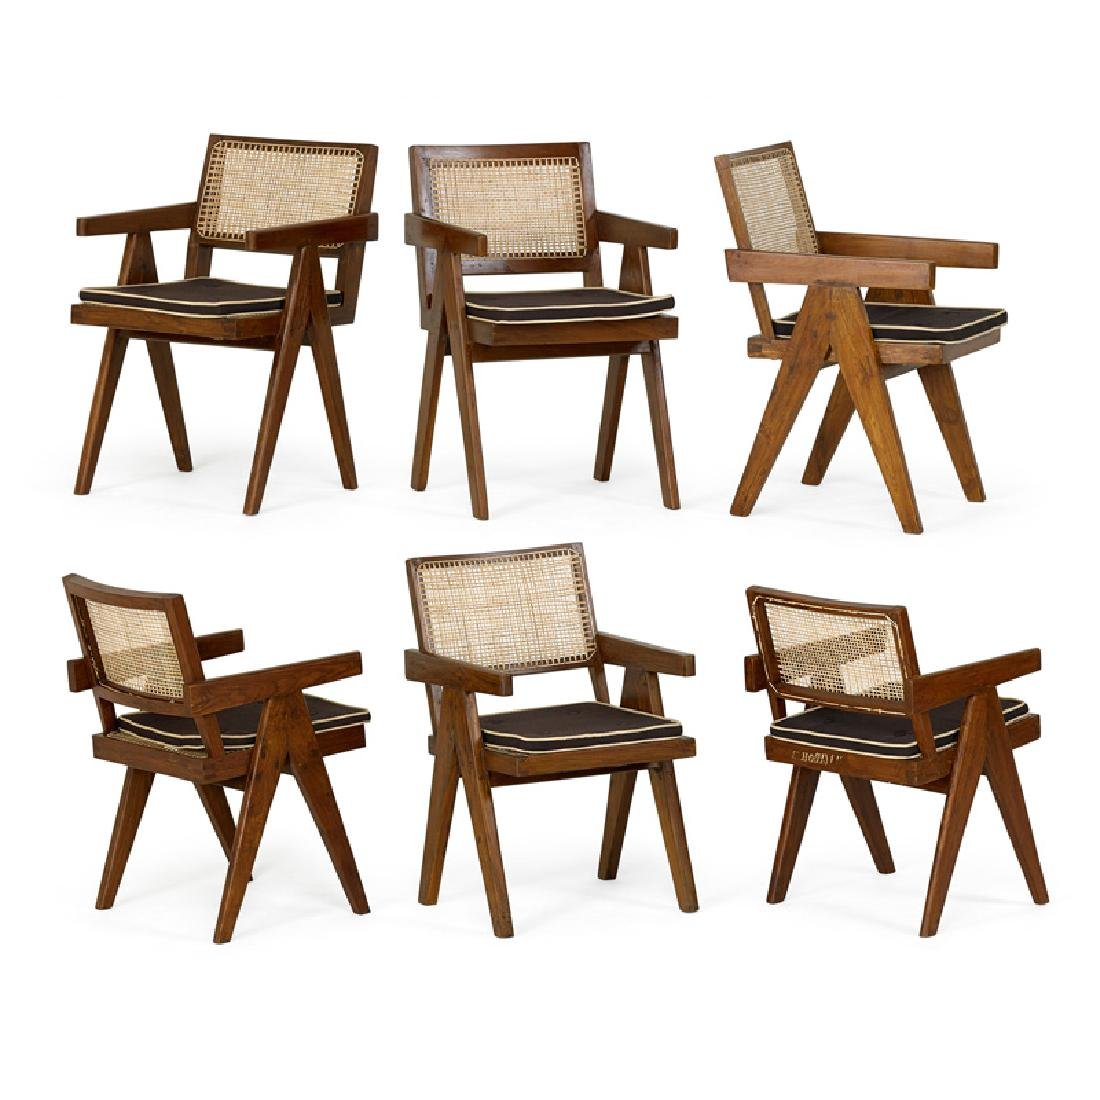 PIERRE JEANNERET Six V-leg chairs